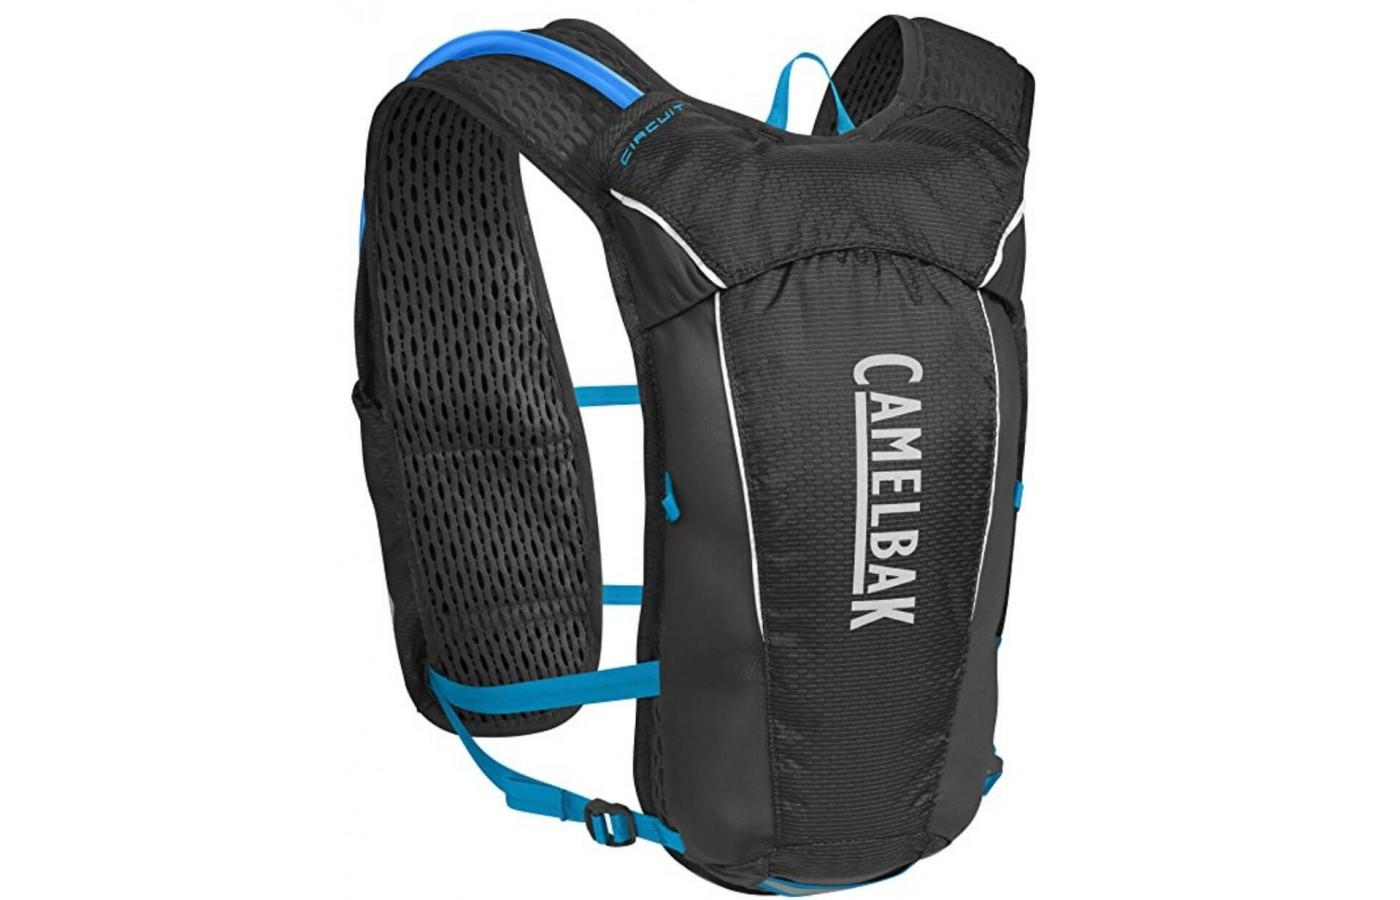 Camelbak Circuit Vest is ideal for short to medium runs.